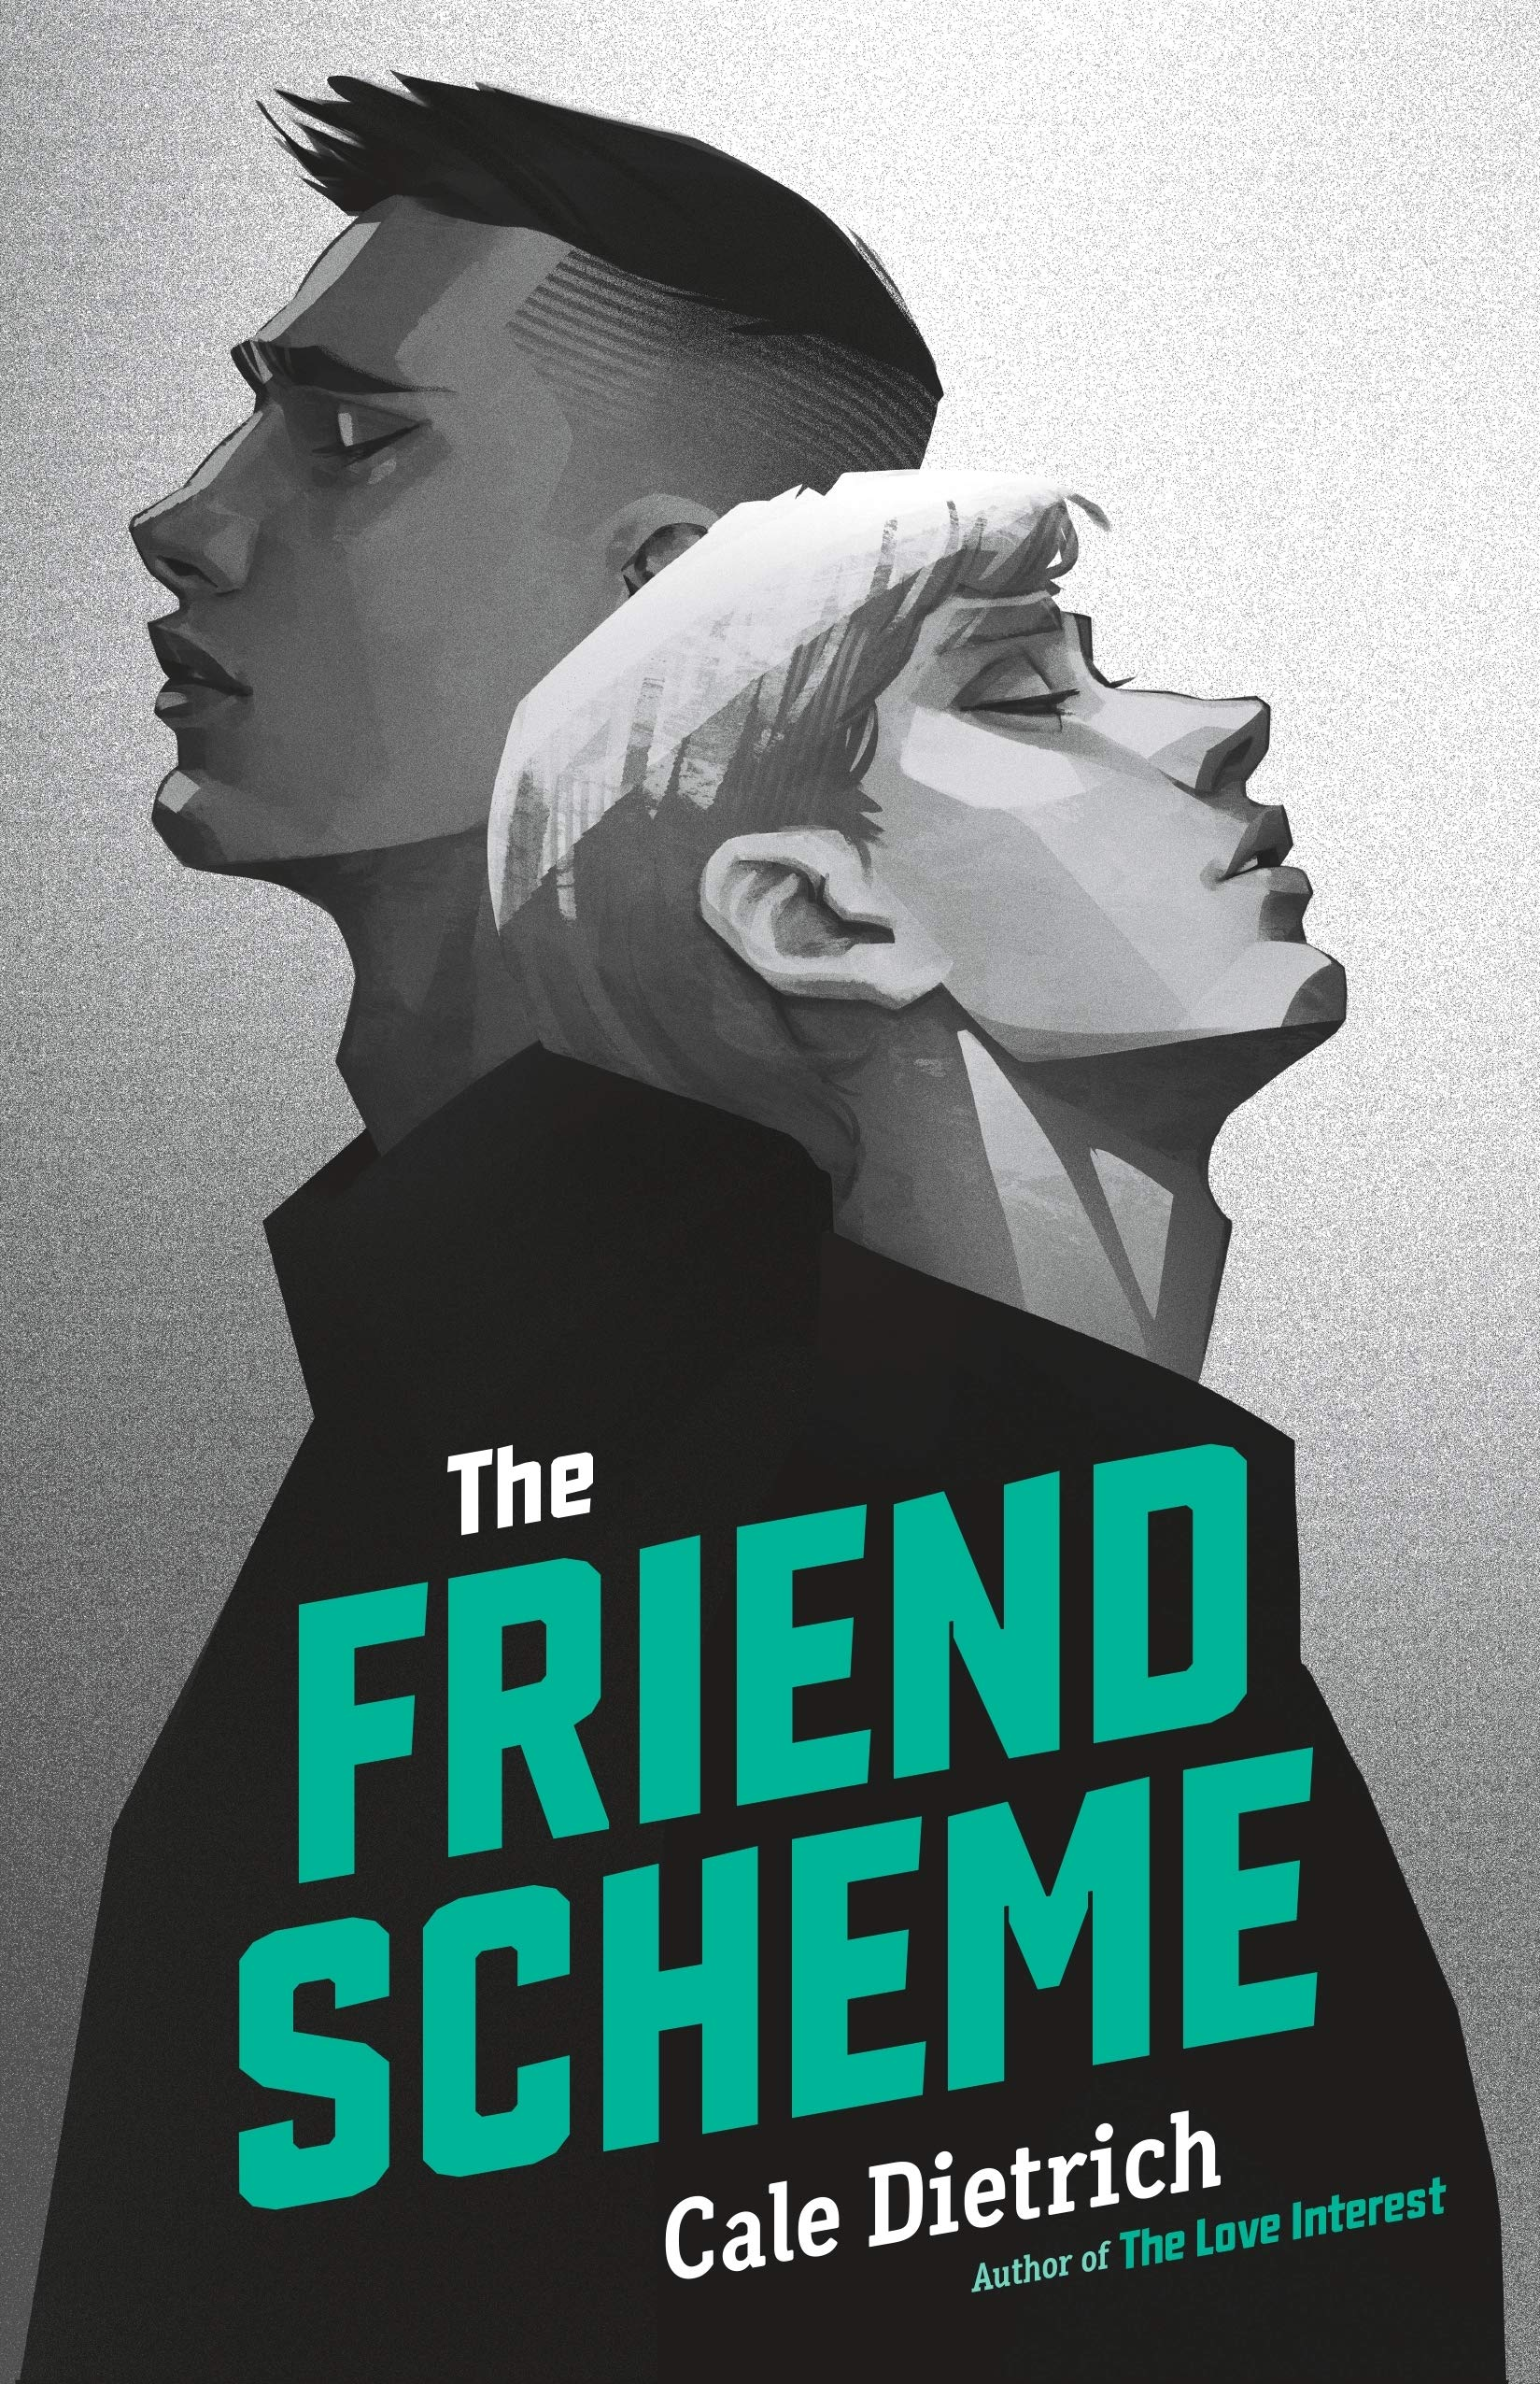 Amazon.com: The Friend Scheme (9781250186997): Dietrich, Cale: Books